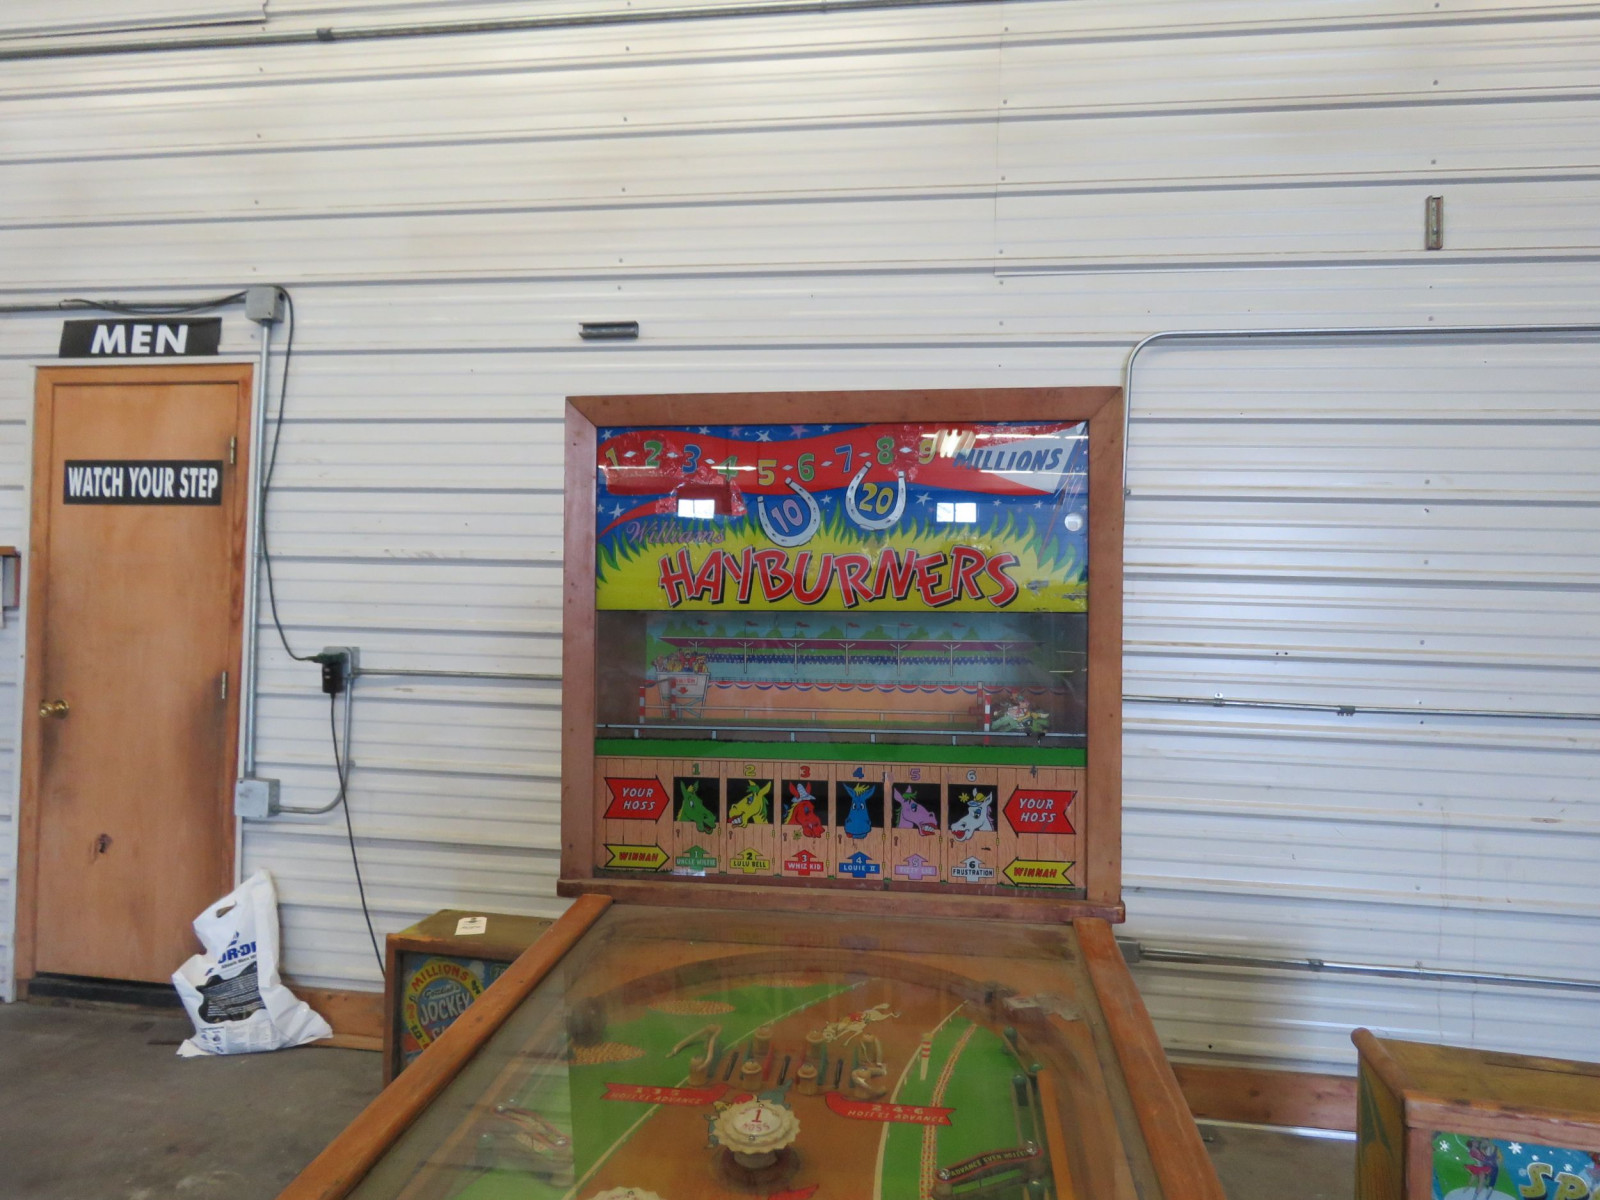 Hay Burners Vintage Horse Racing Pinball Machine - Image 4